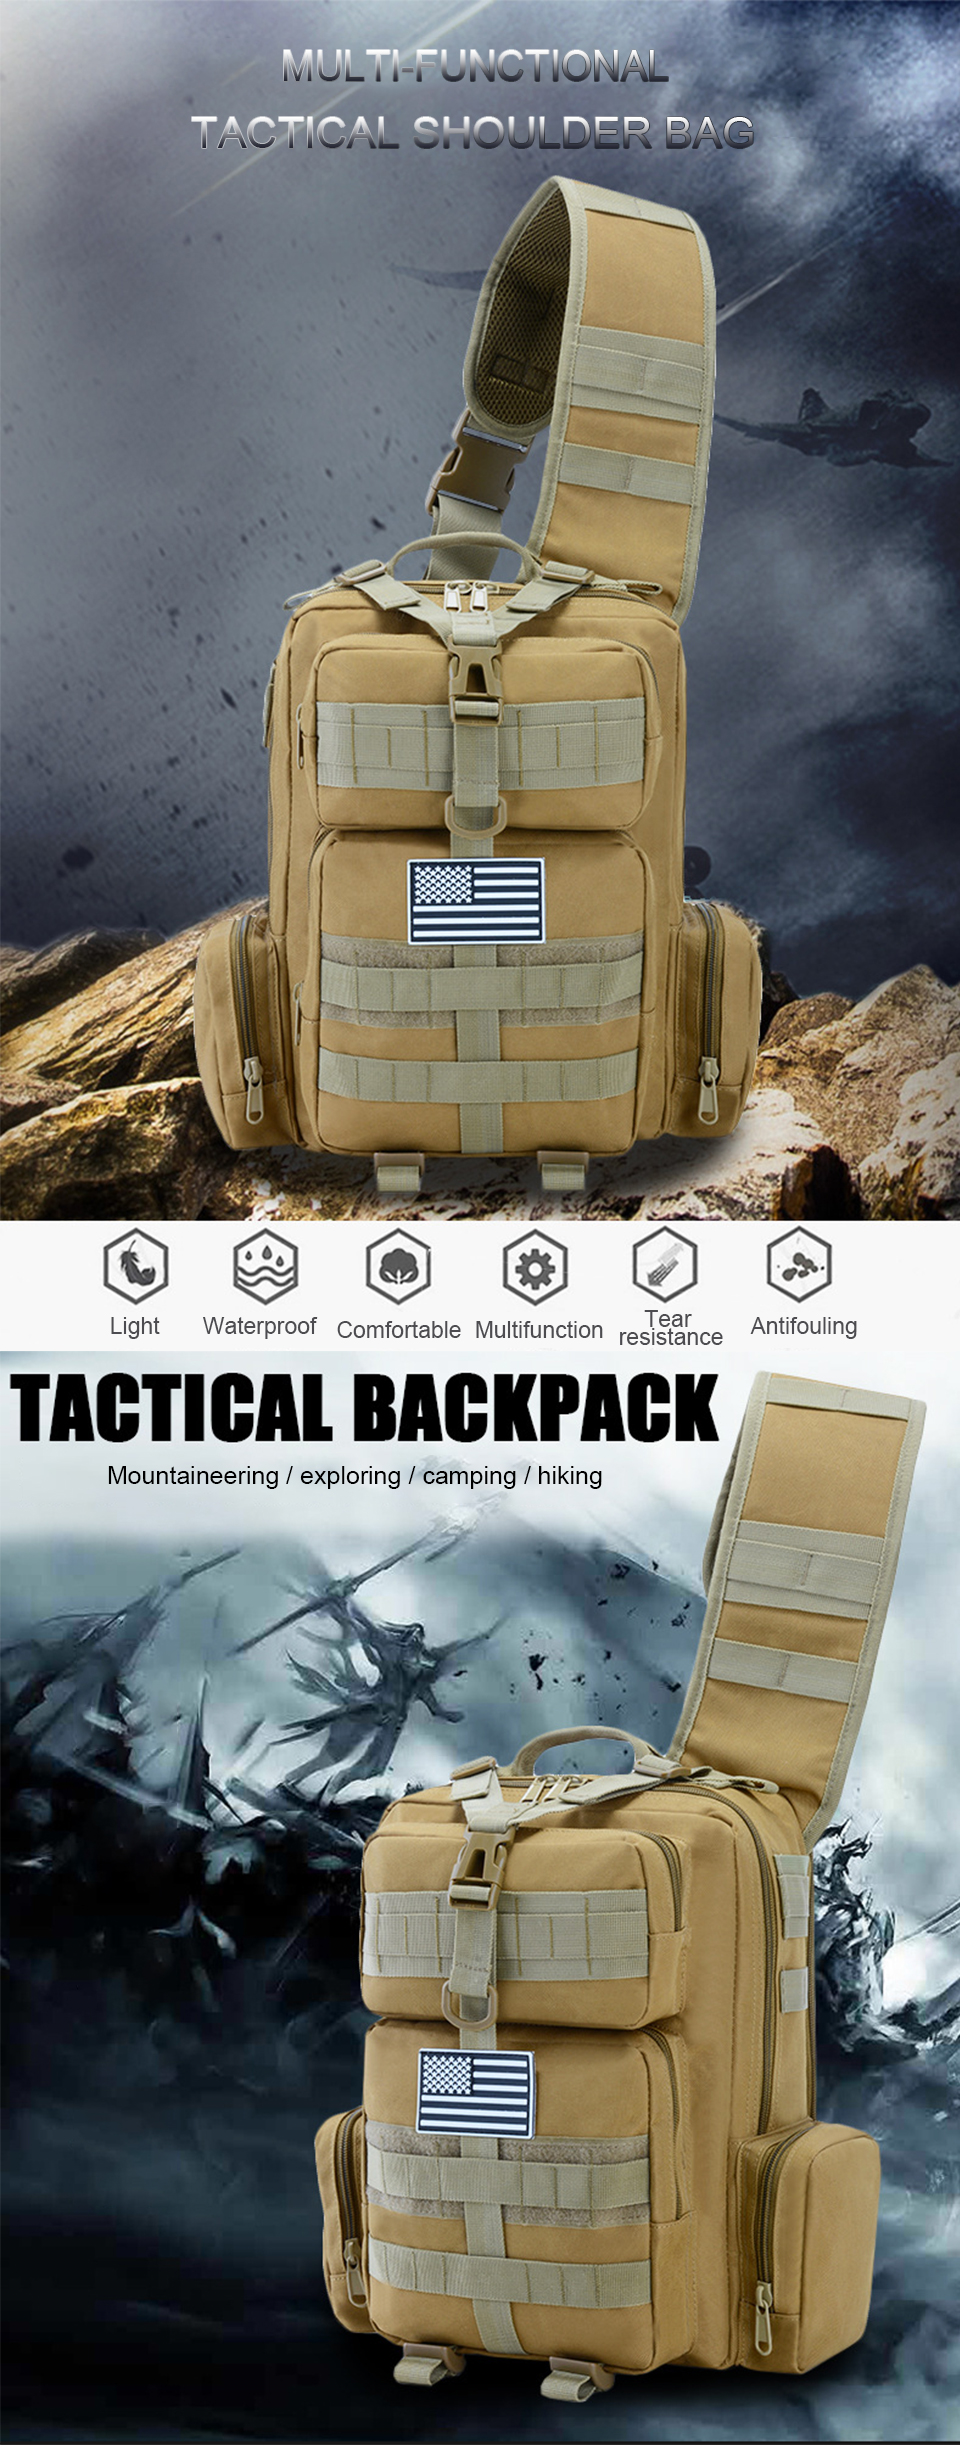 Outdoor-Sports-Military-Bag-Tactical-Bags-Climbing-Shoulder-Bag-Camping-Hiking-Hunting-Chest-Daypack-Molle-Camouflage-Backpack_01